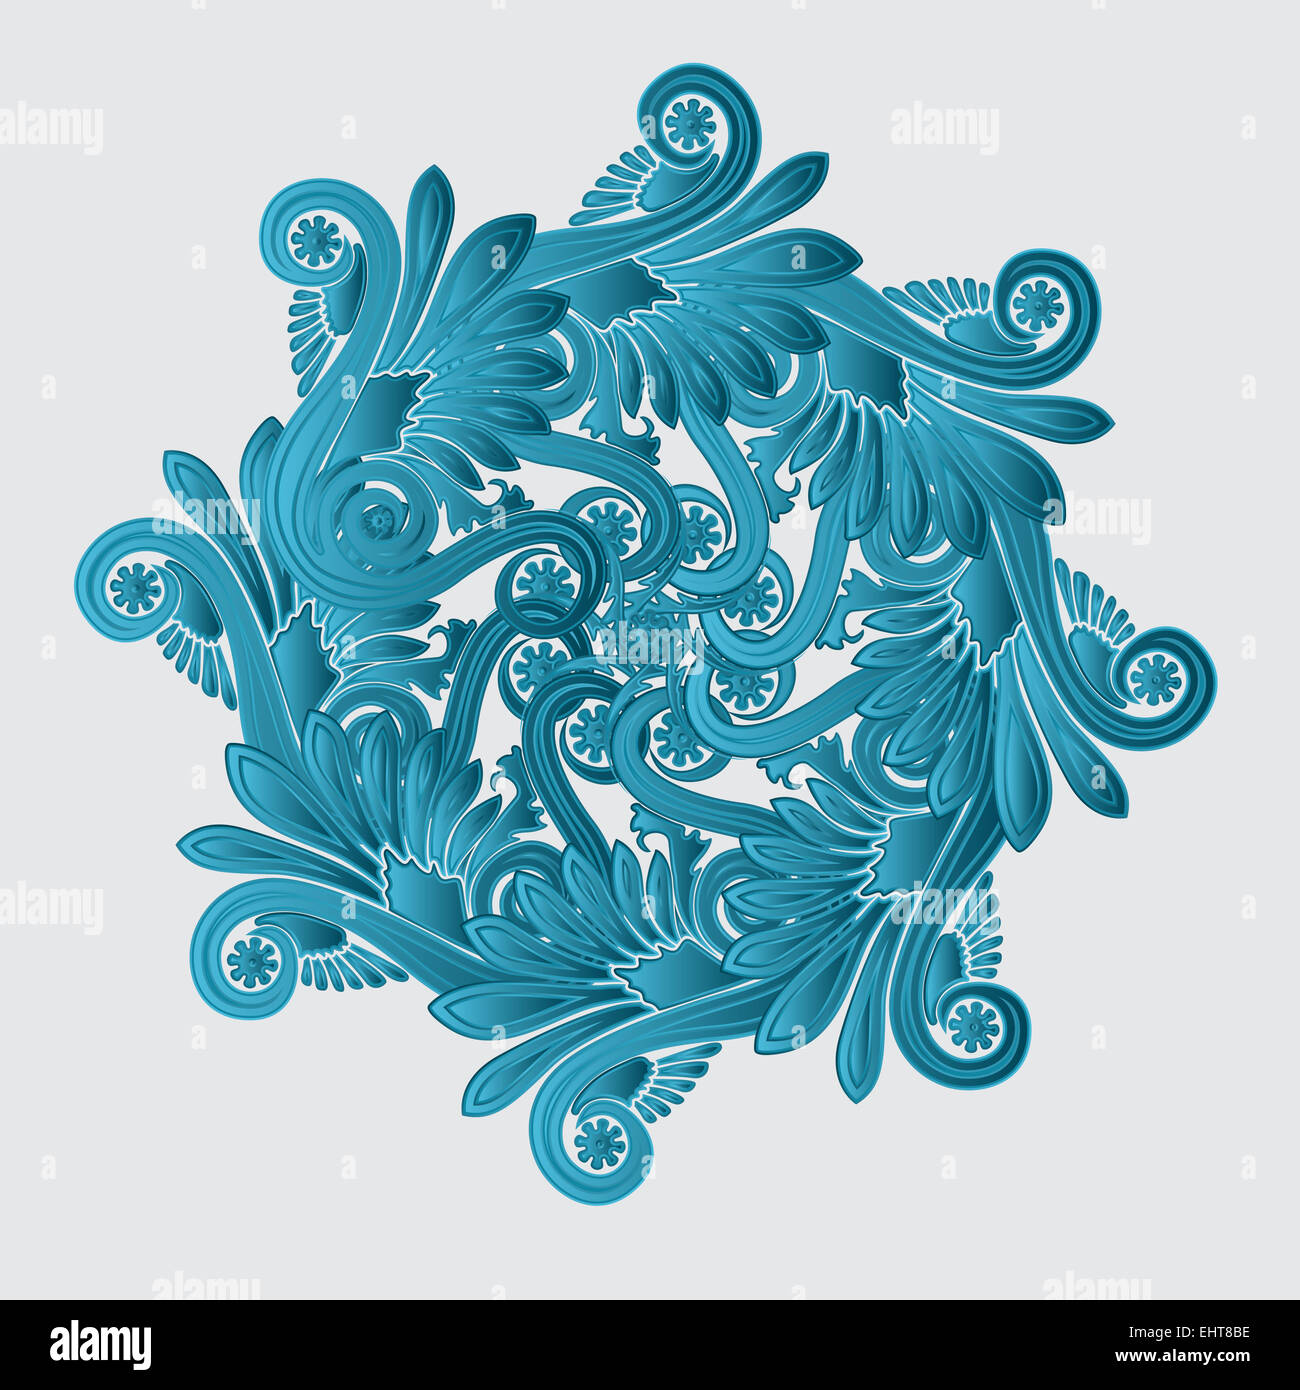 Decorative flourish design - Stock Image